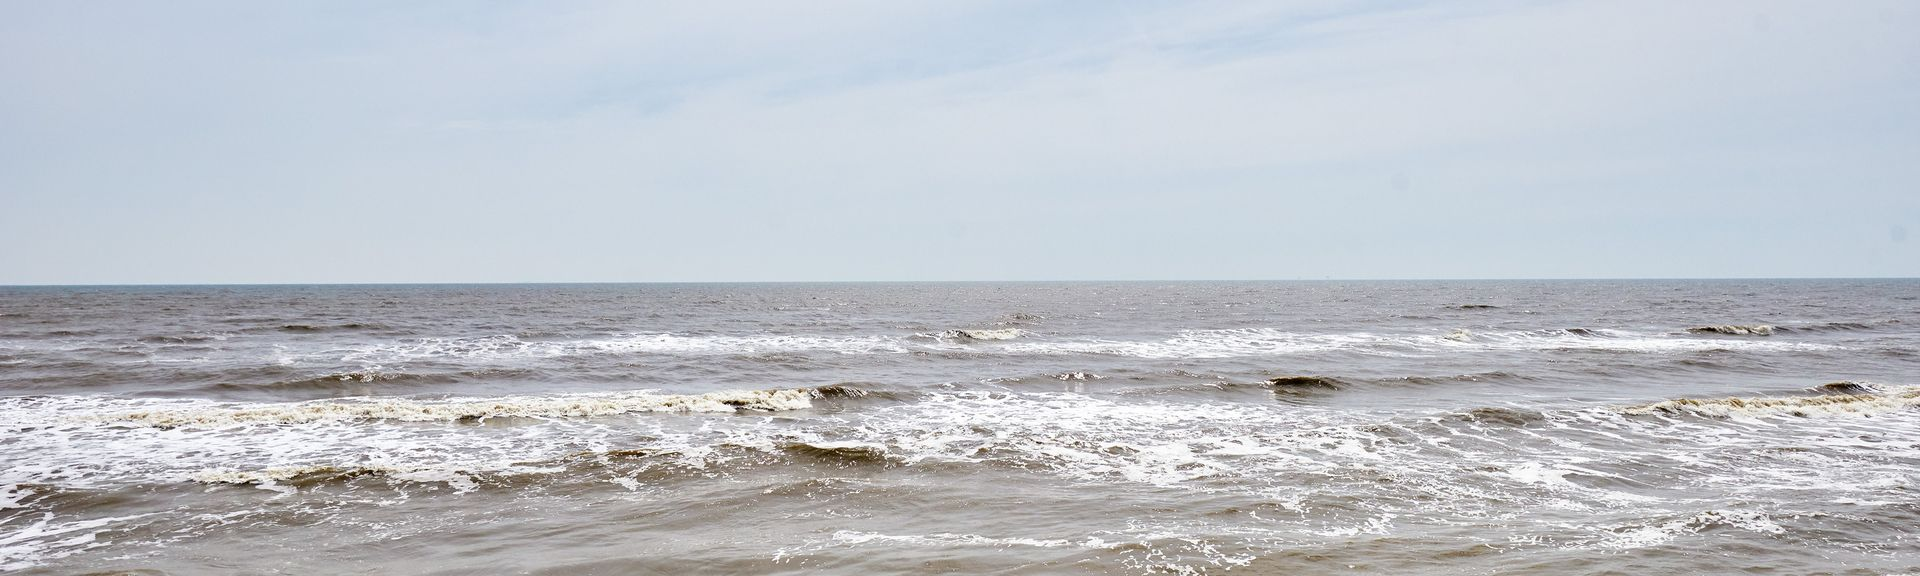 Sunny Beach, Galveston, Galveston County, Texas, USA